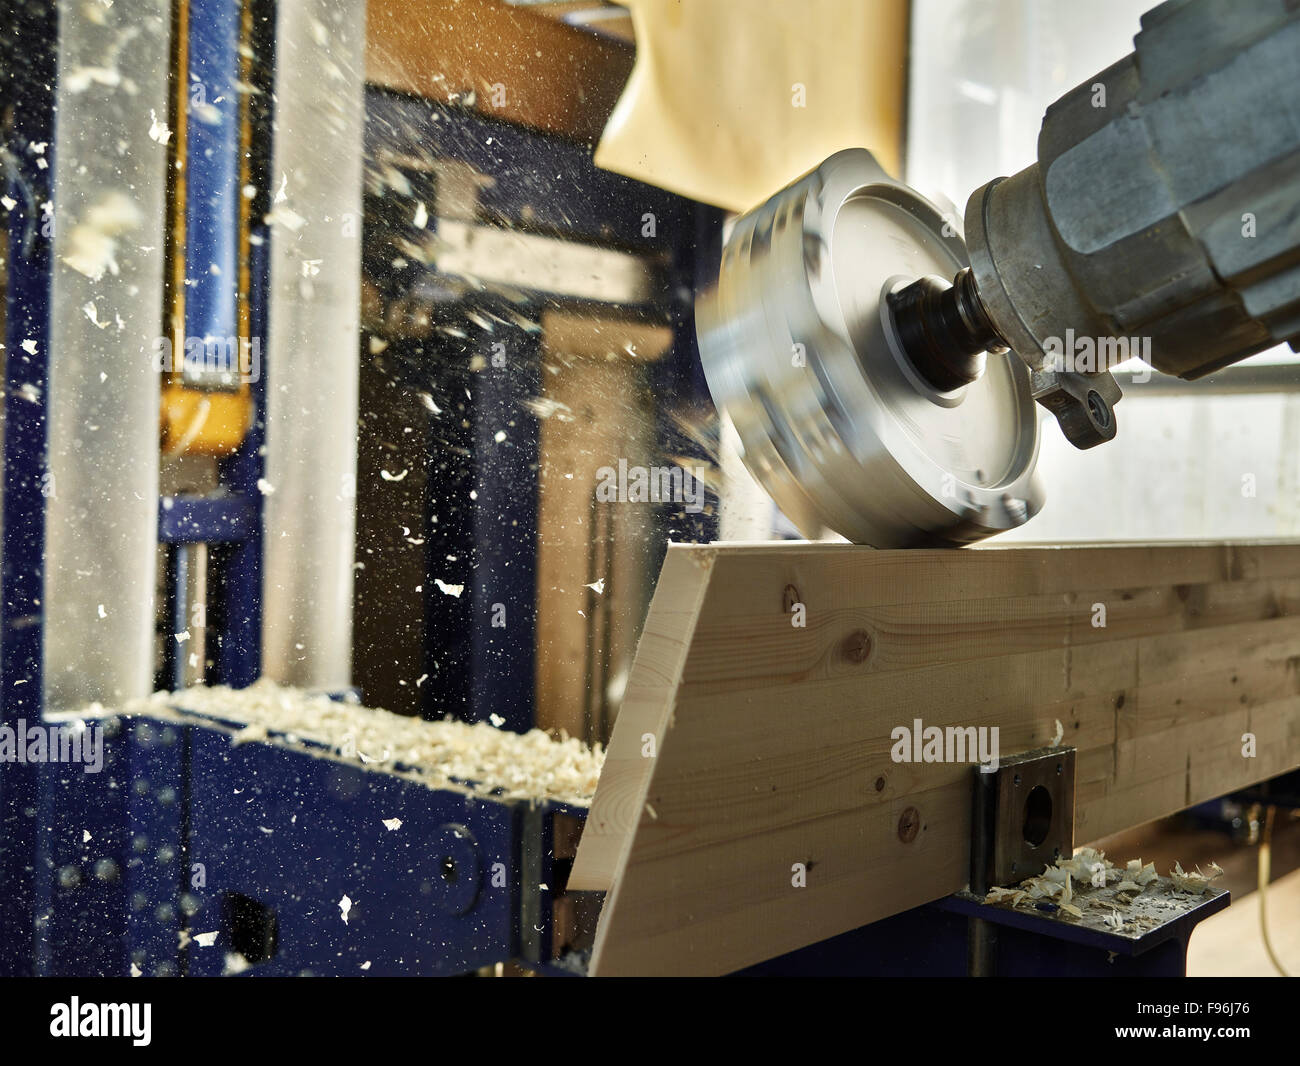 Wood milling machine shaping a wooden board, Austria - Stock Image